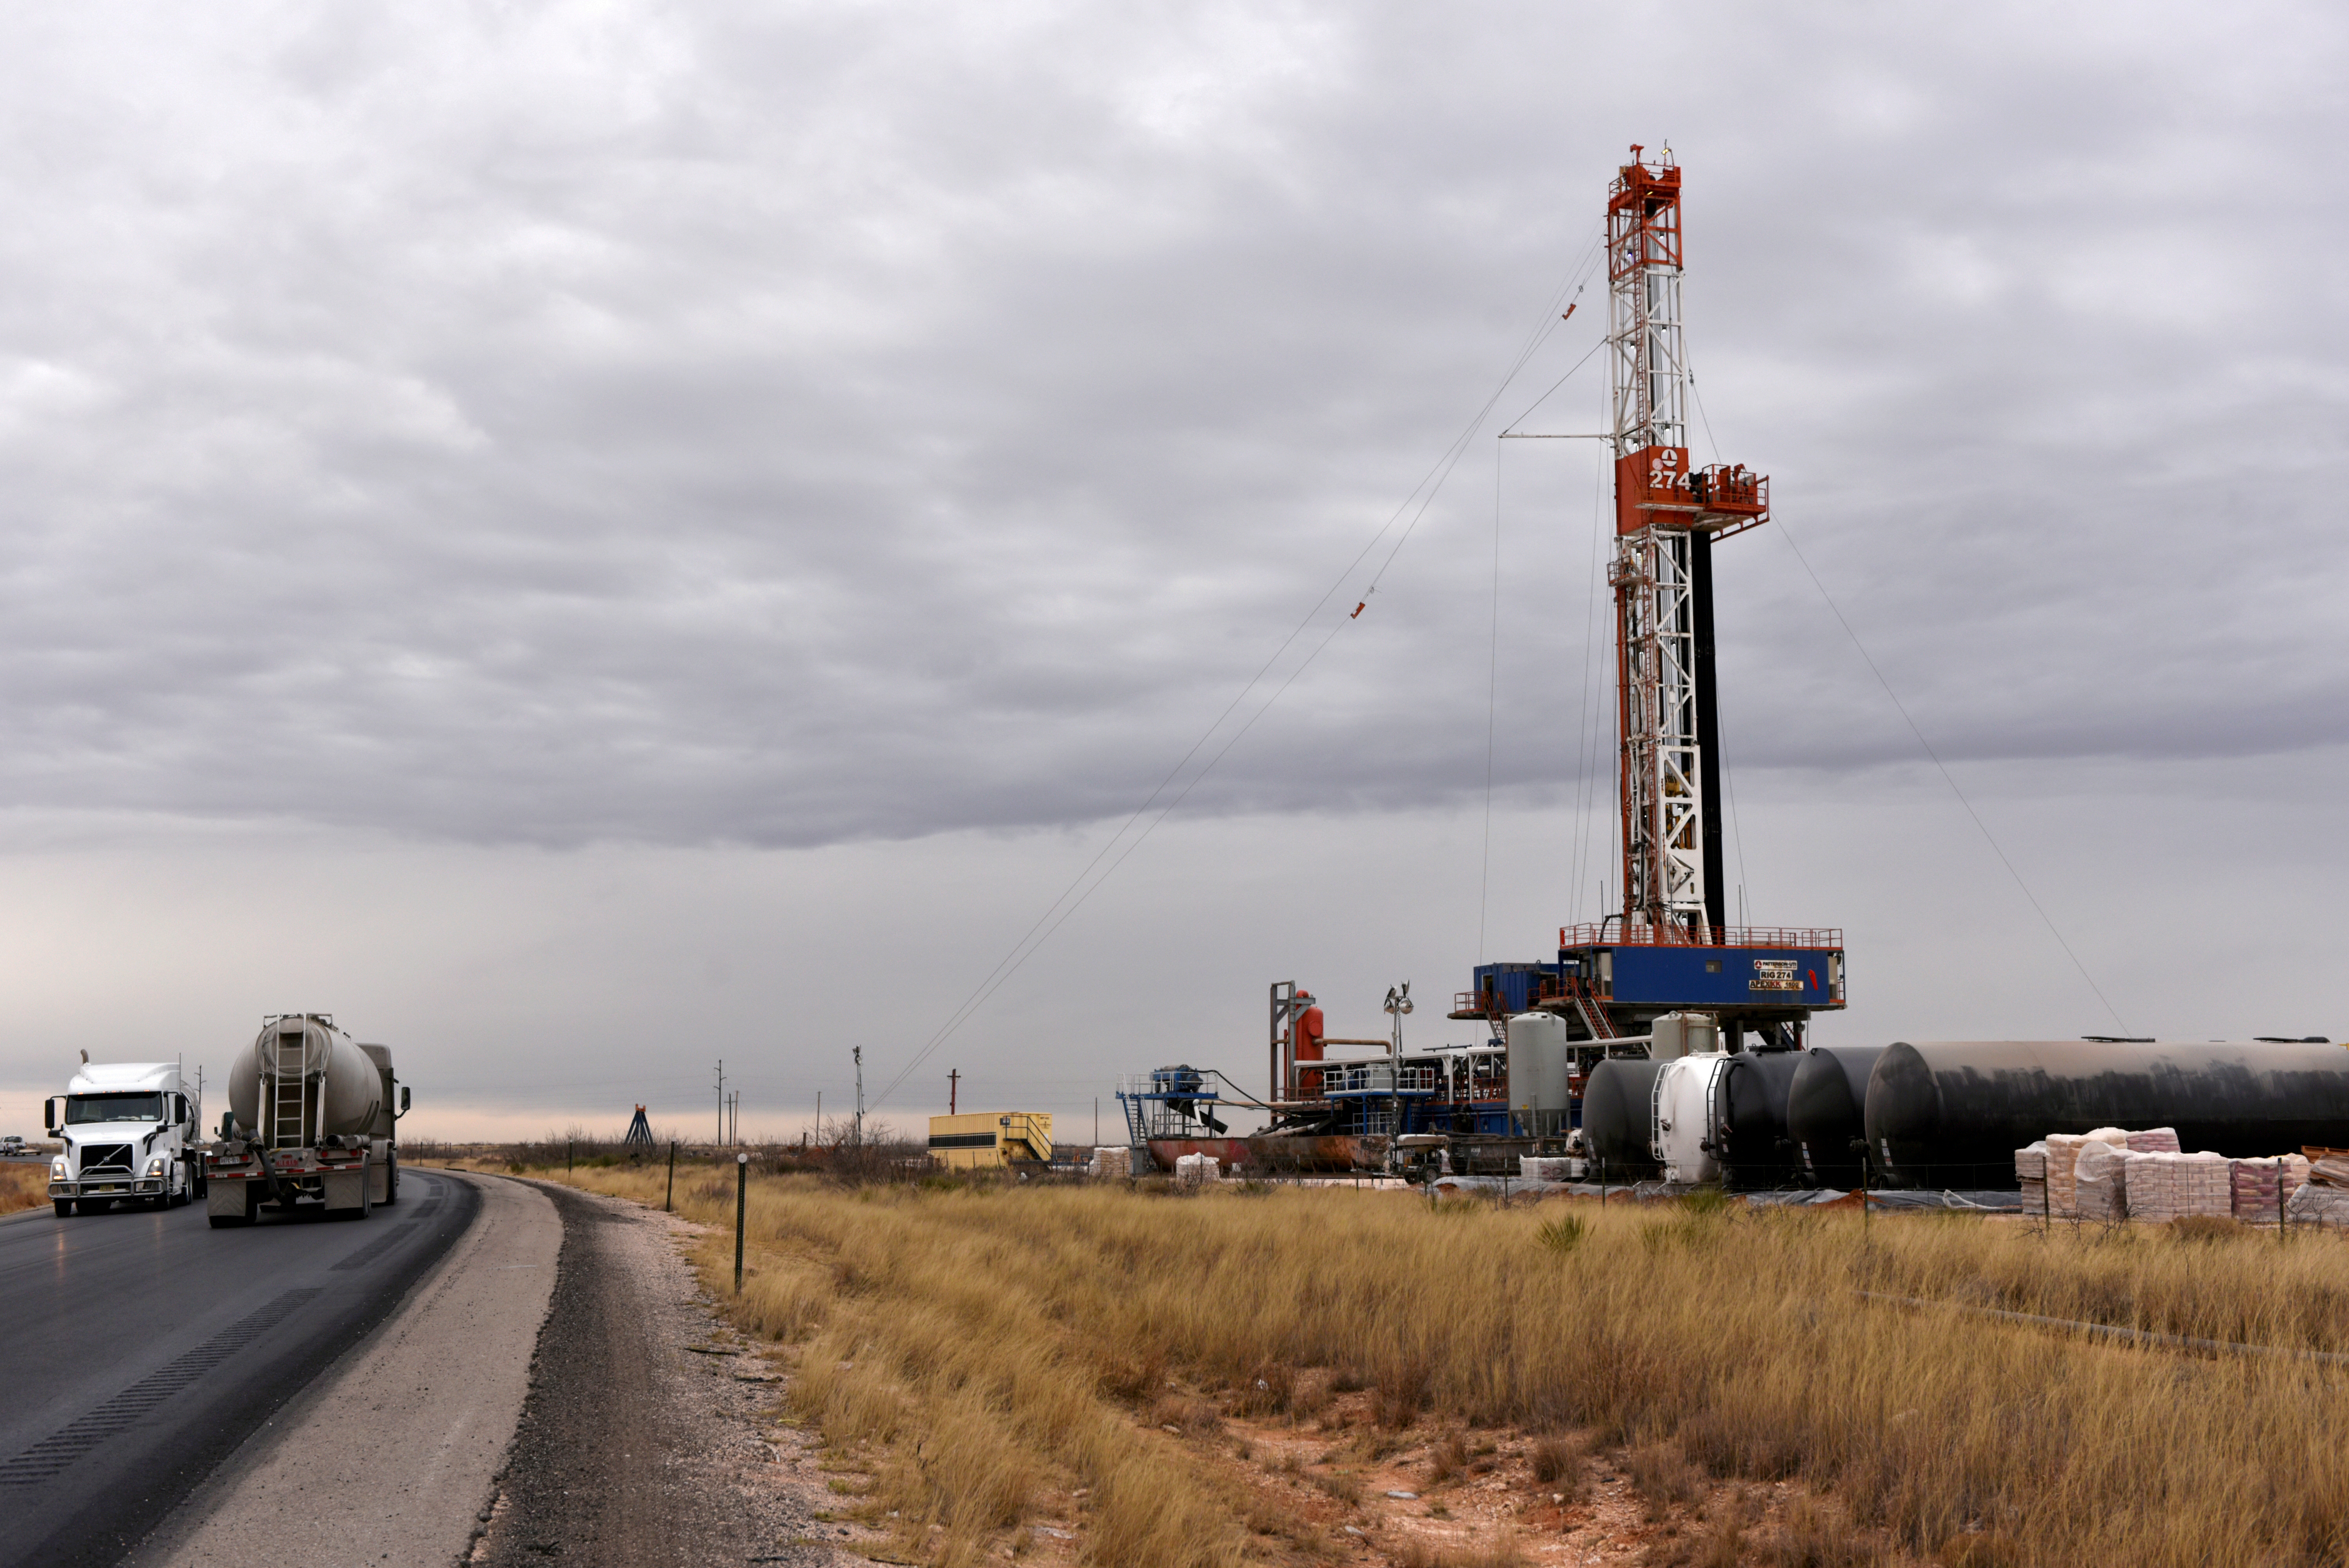 A drilling rig operates in the Permian Basin oil and natural gas production area in Lea County, New Mexico, U.S., February 10, 2019. REUTERS/Nick Oxford/File Photo